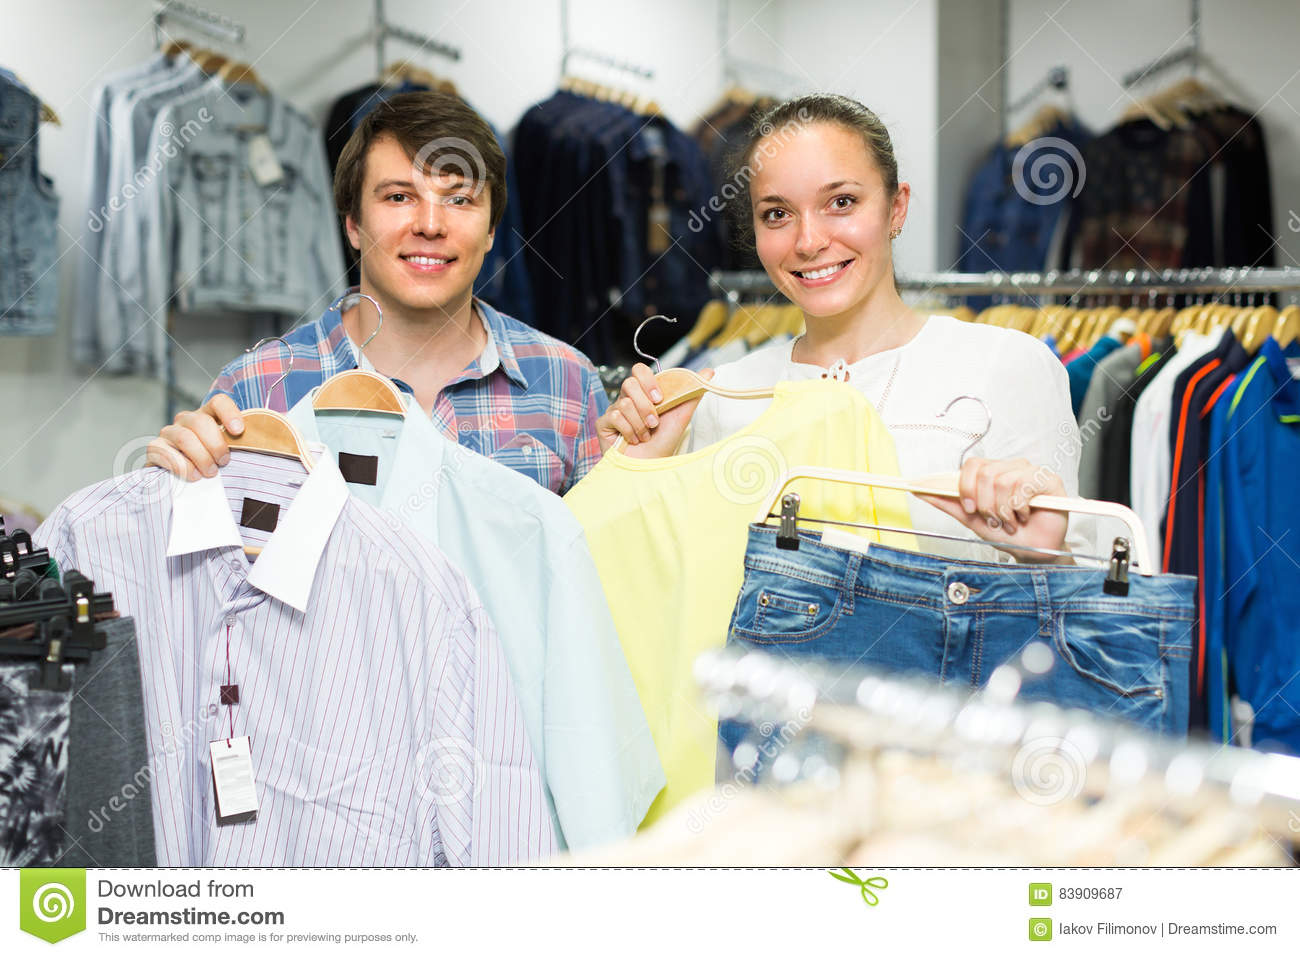 Couples clothing store